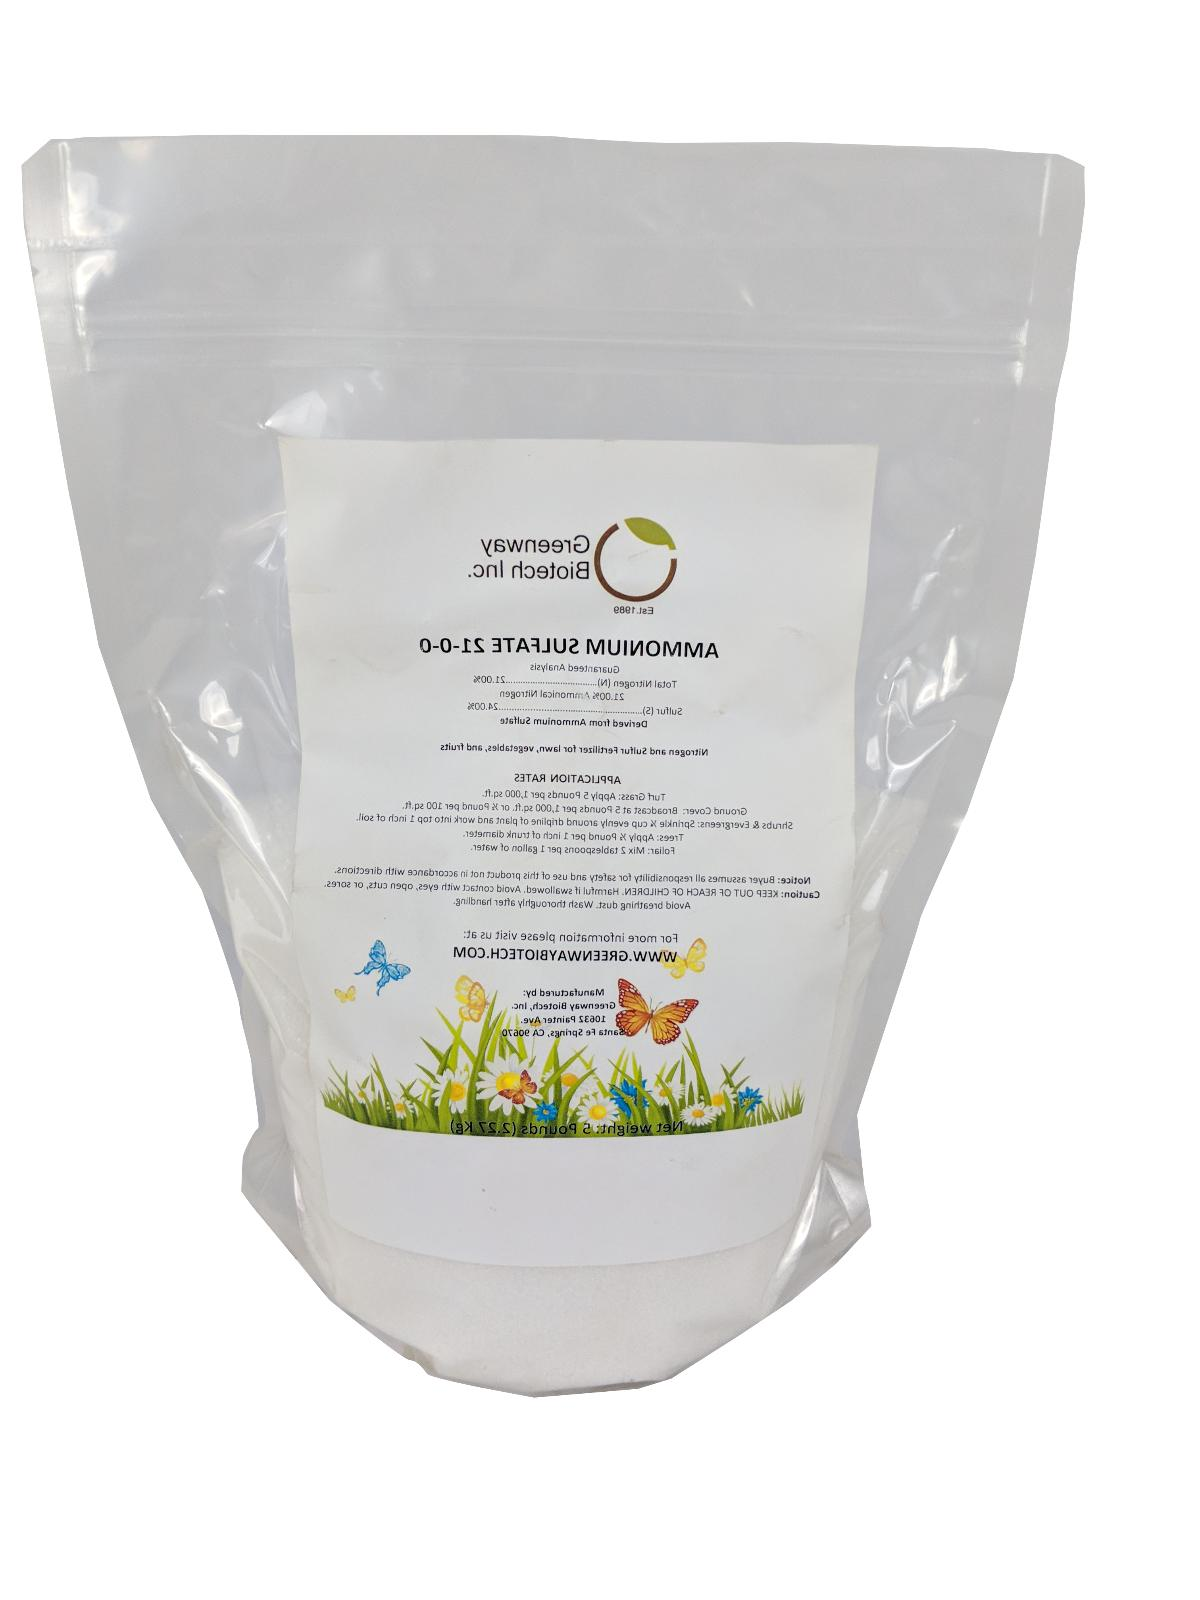 Ammonium Sulfate Fertilizer 21-0-0 Plus 24% Sulfur 100% Wate